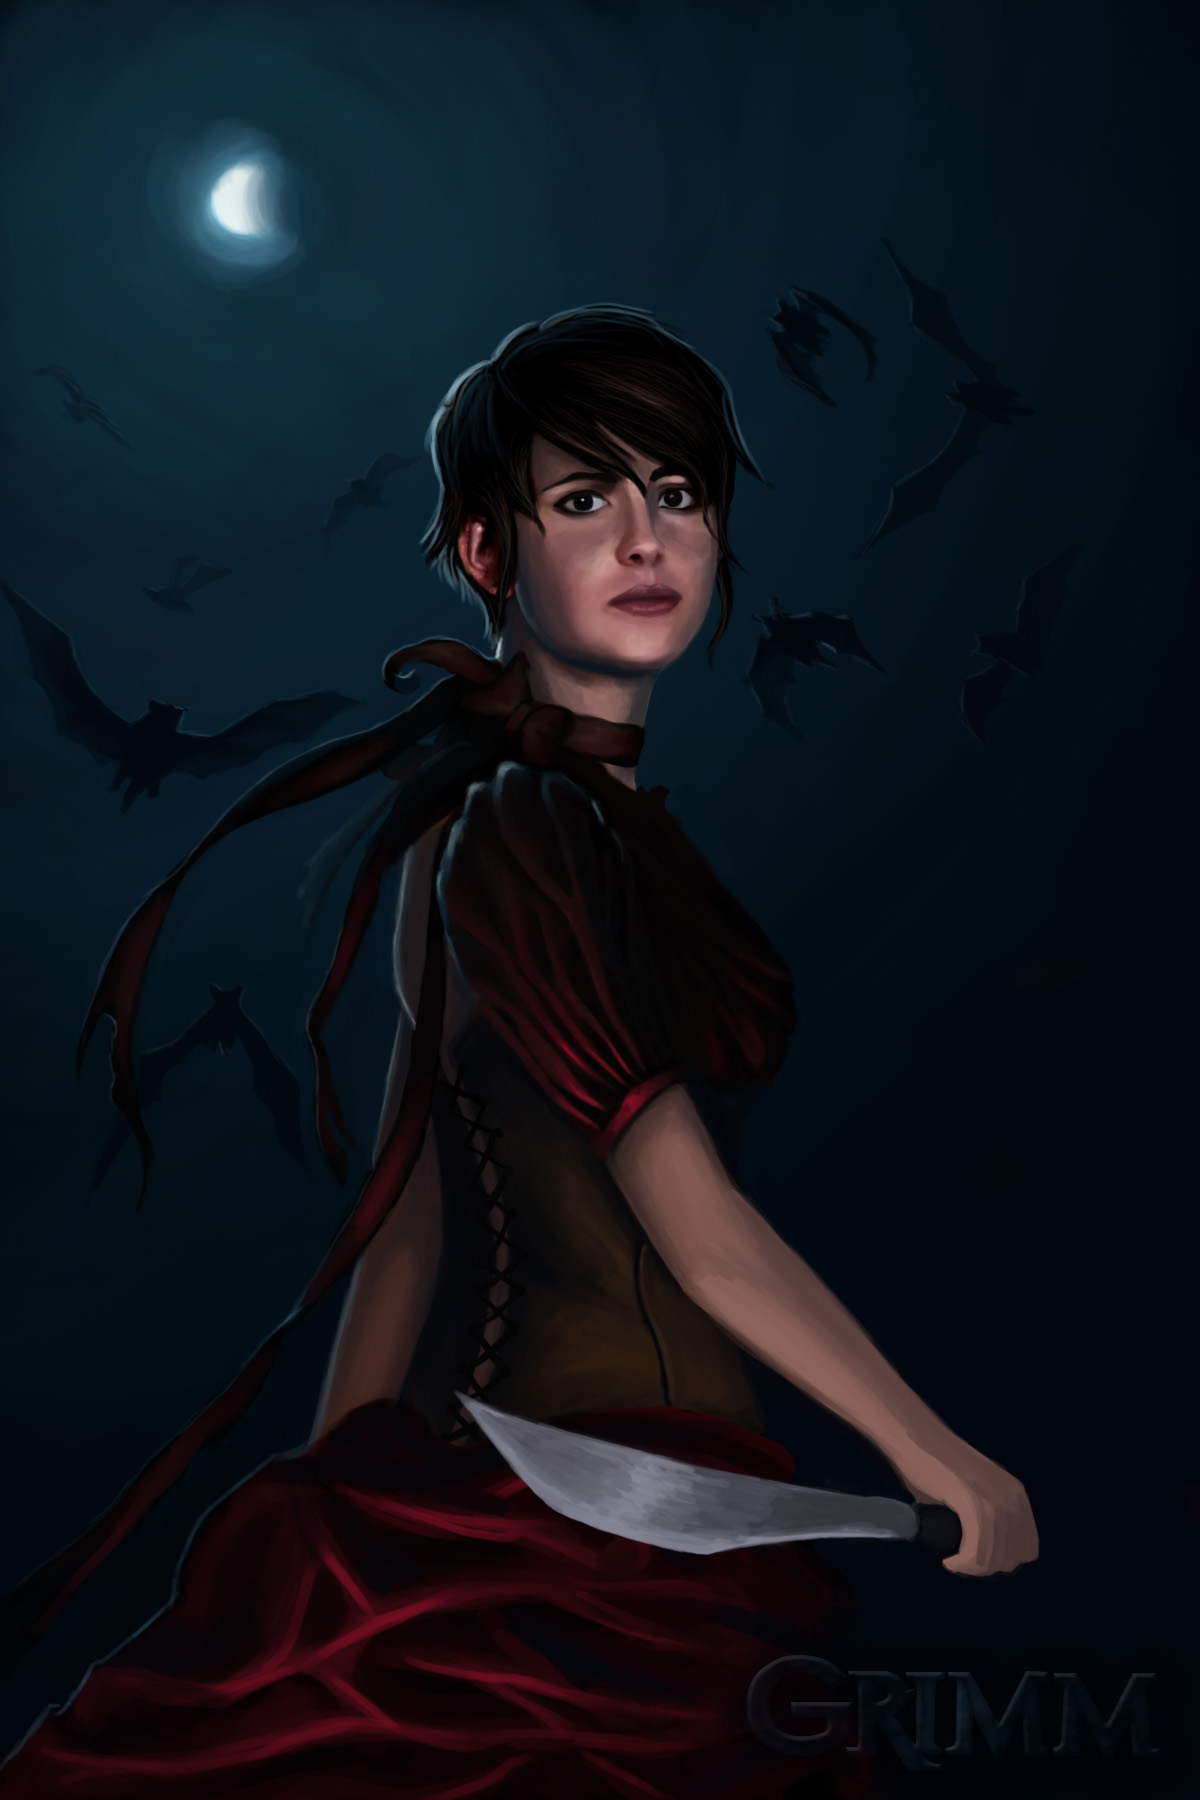 http://images6.fanpop.com/image/photos/38000000/Trubel-Painting-trubel-38076627-1200-1800.jpg